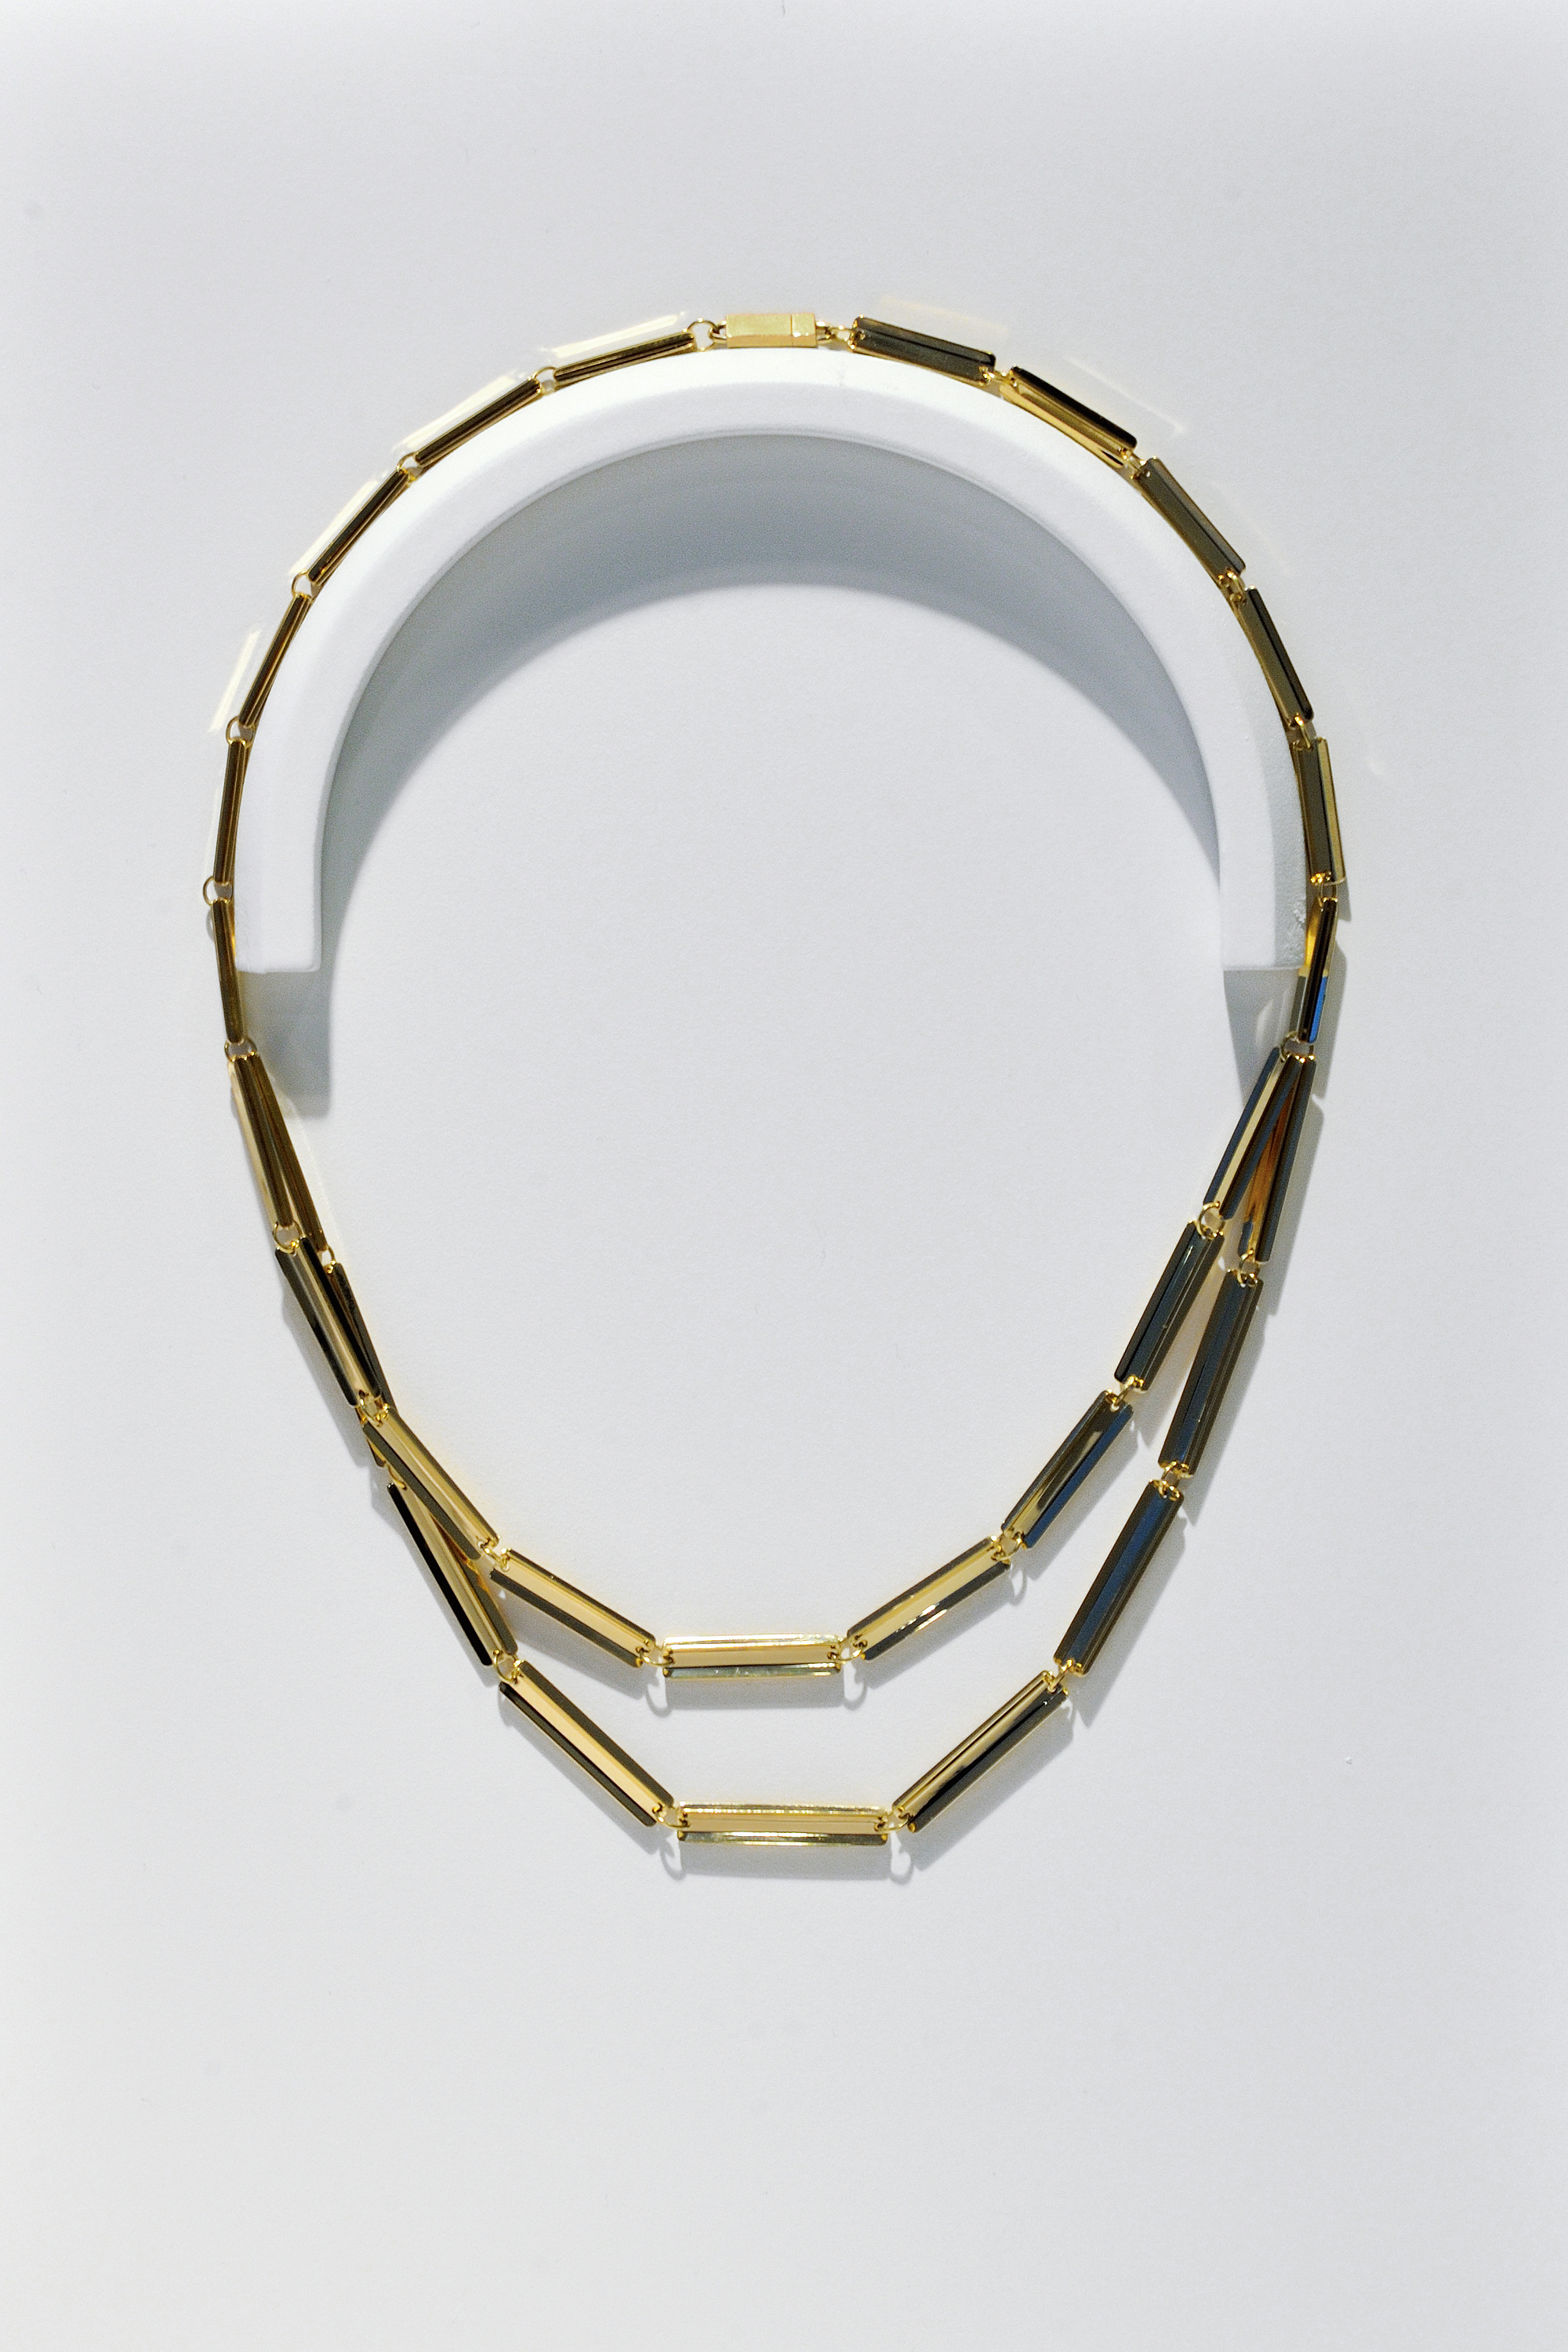 A Mitsui necklace